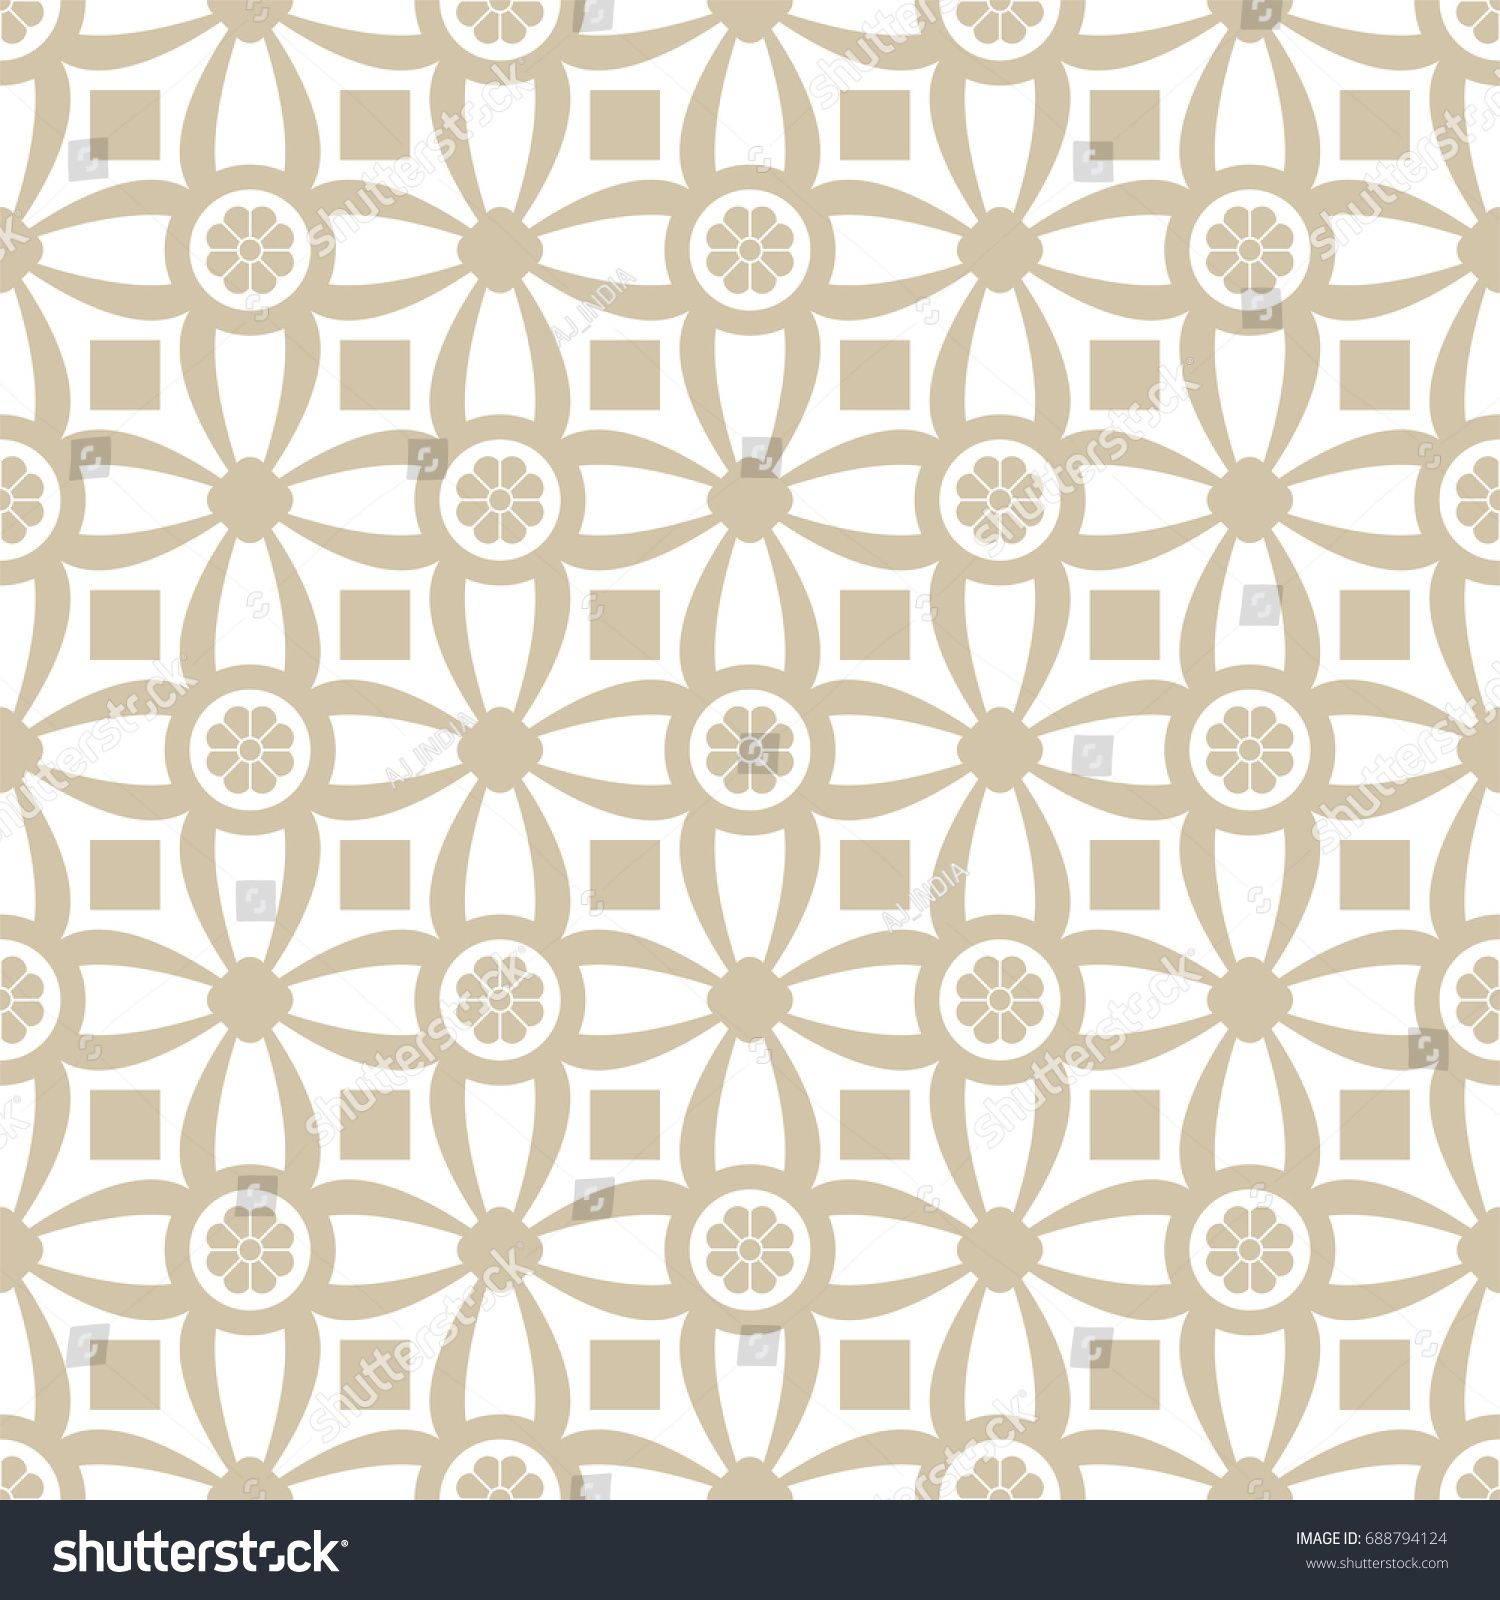 Seamless Abstract Floral Pattern Gold And White Geometric Ornament Background